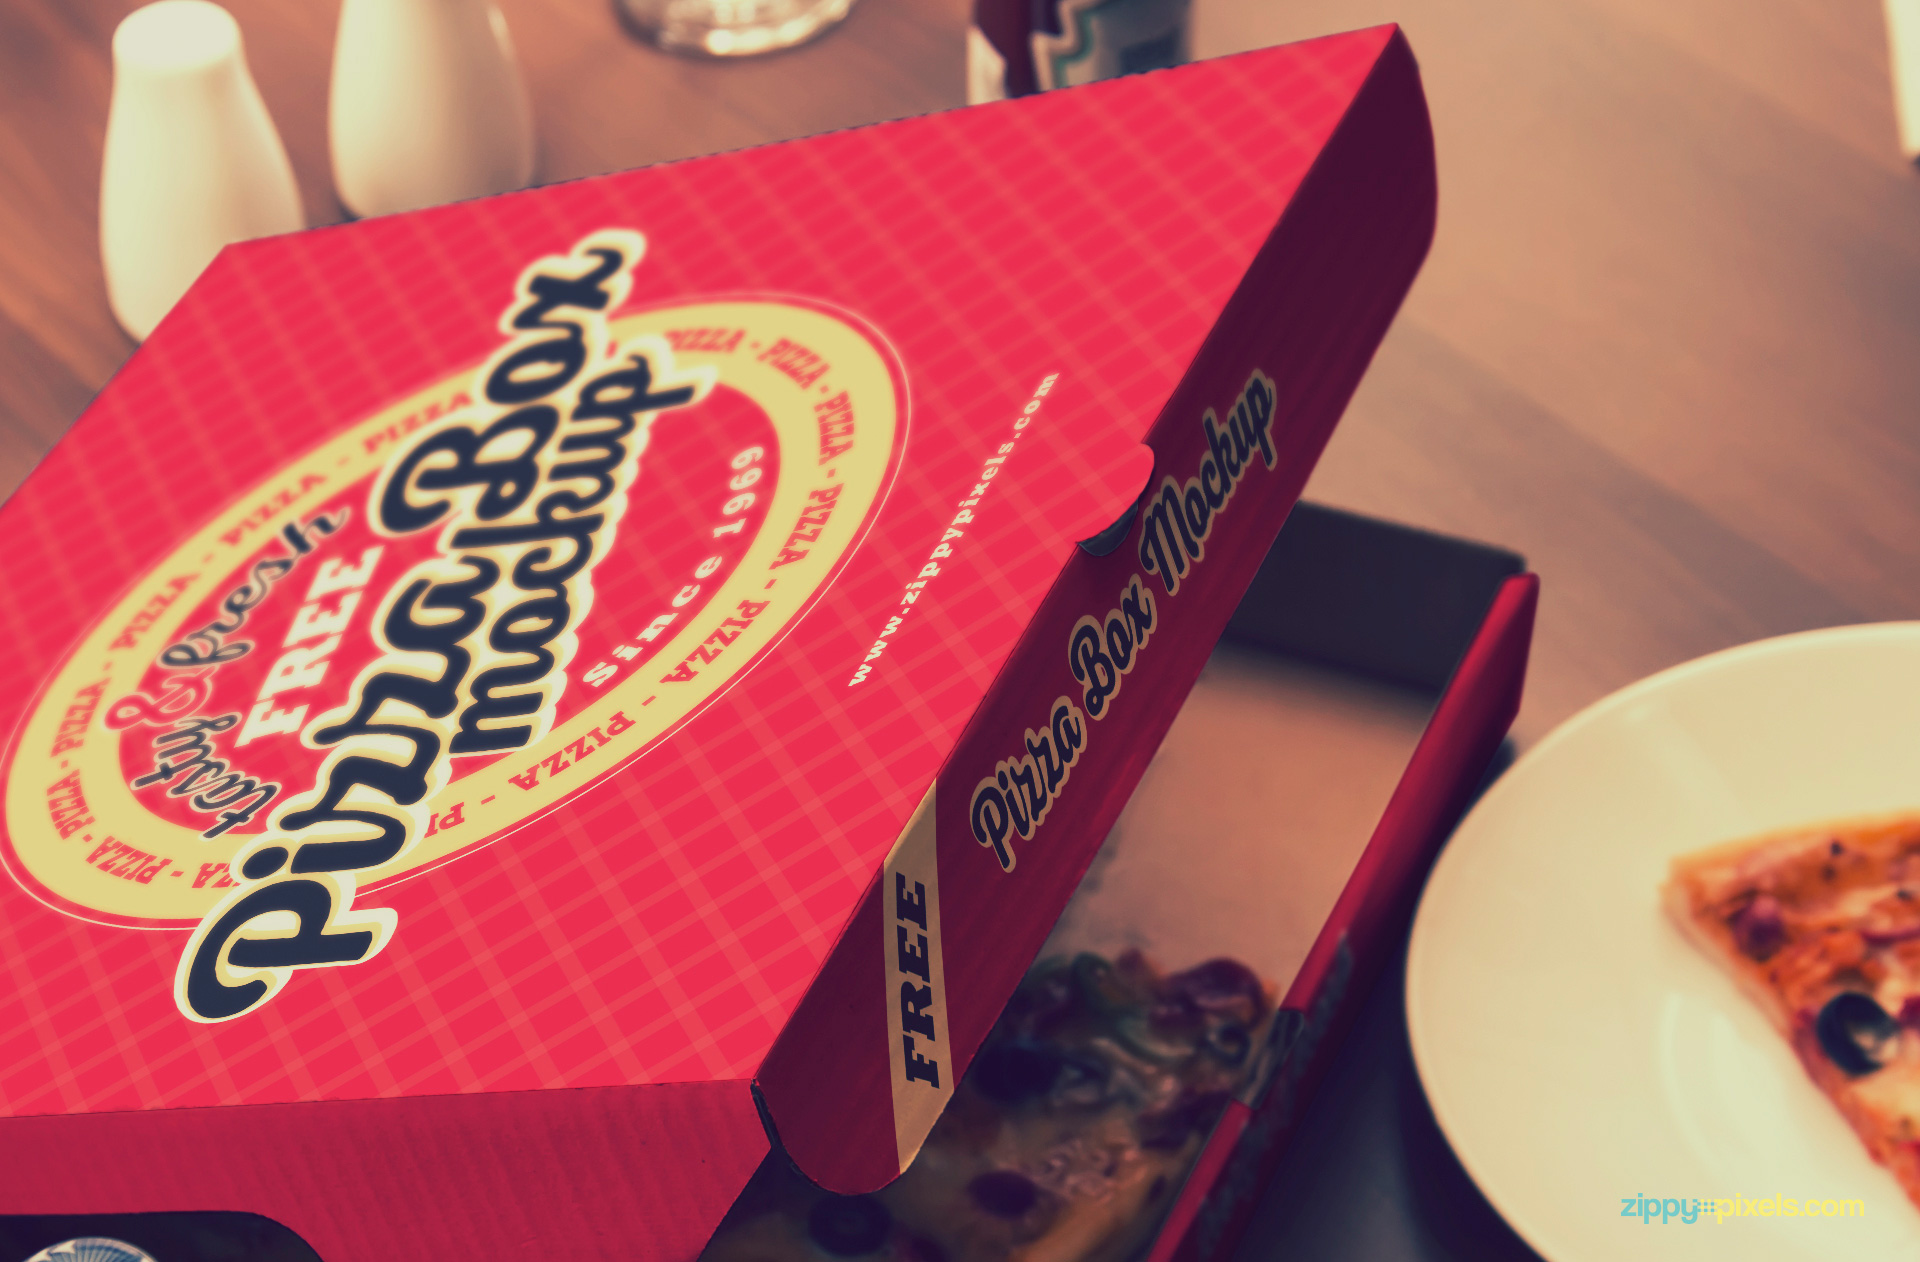 Use Adobe Photoshop to edit the top and side of the pizza box.